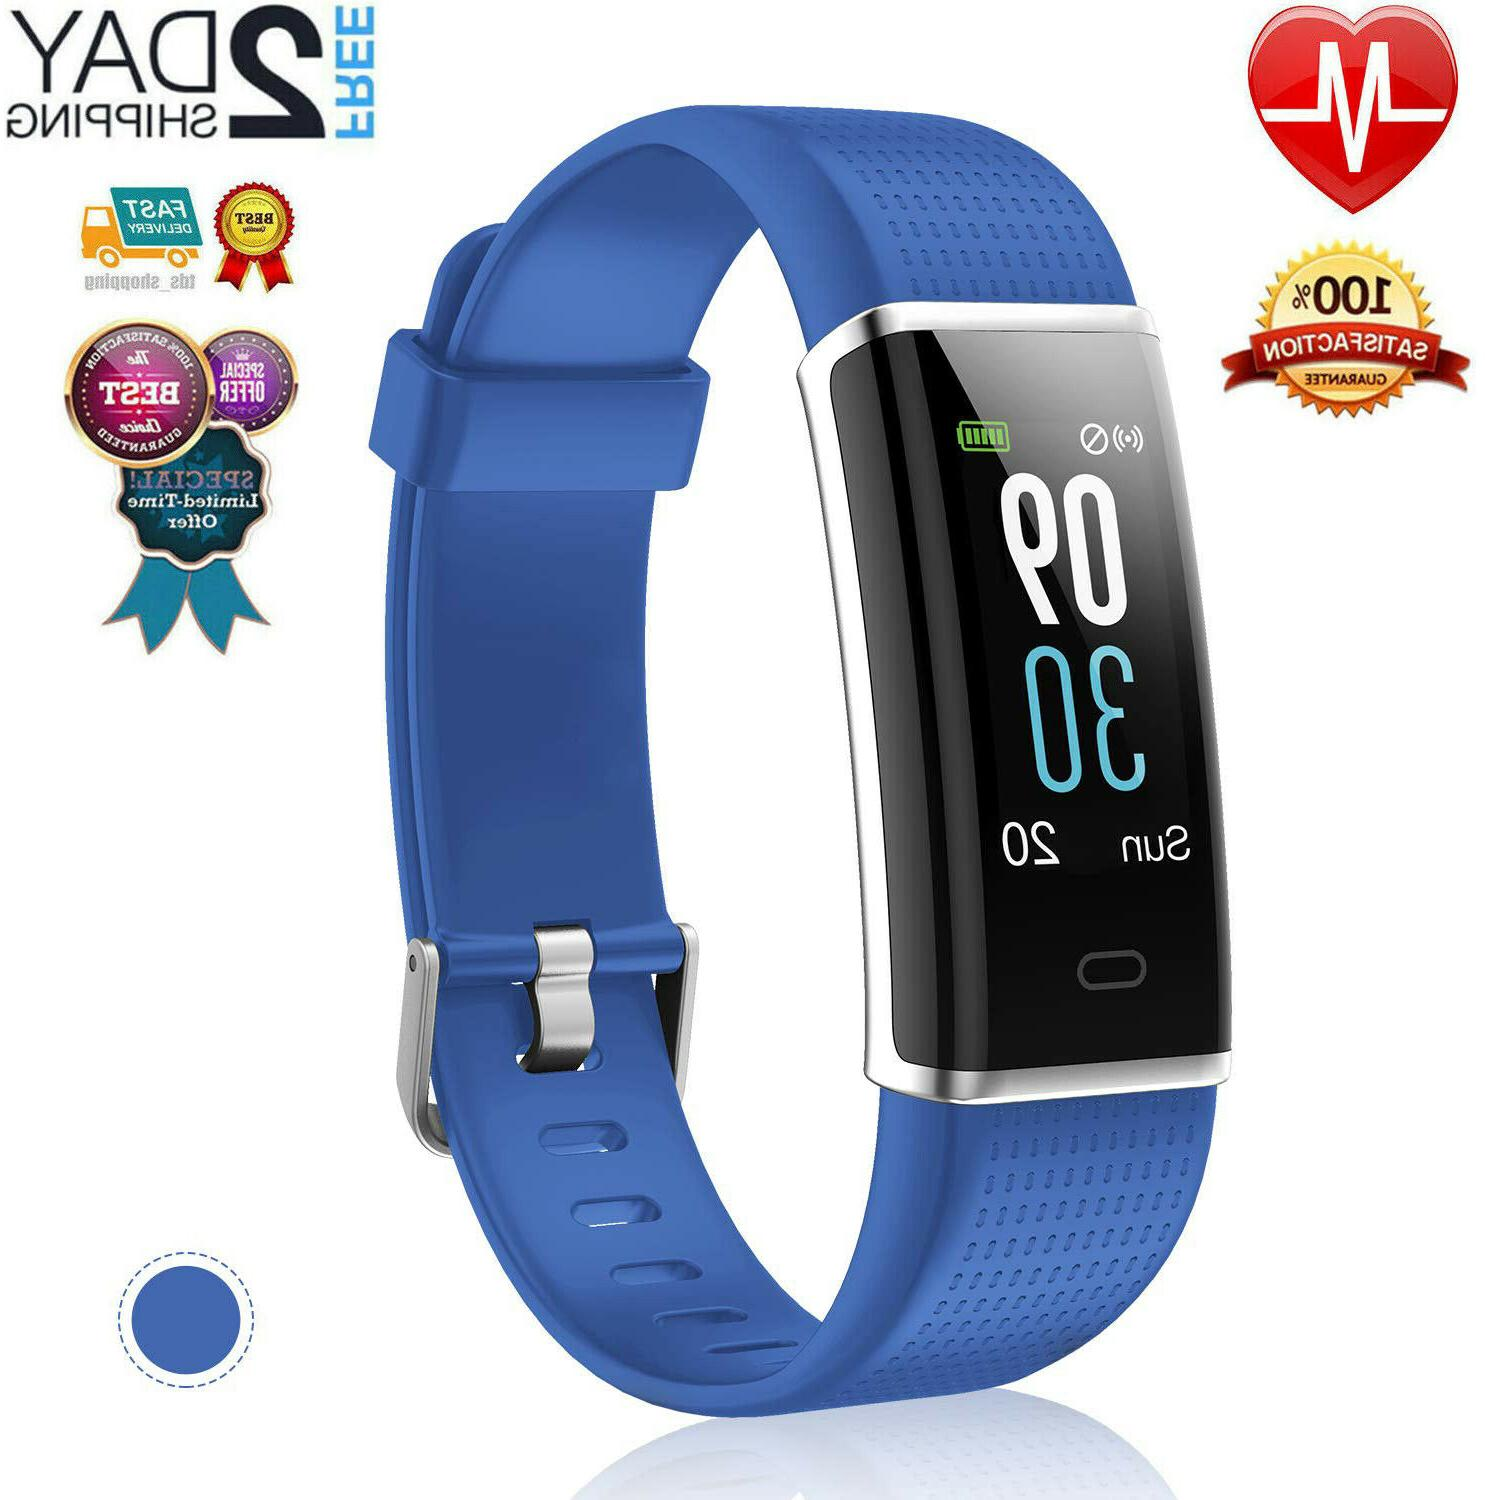 Fitness Activity Tracker Watch Fitbit Heart Rate Monitor Ped